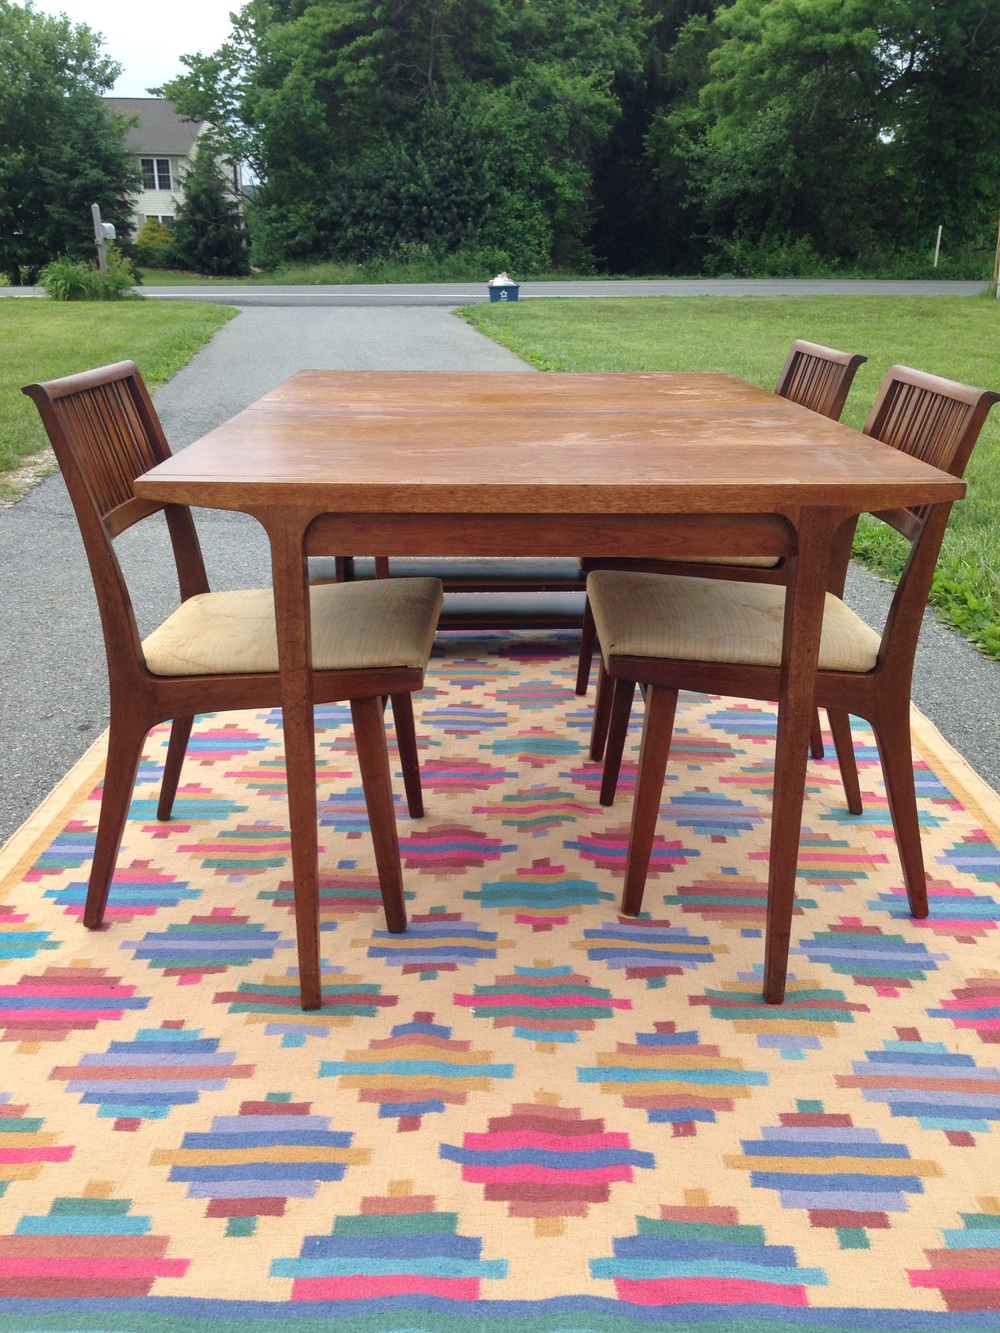 https://www.etsy.com/listing/385045644/drexel-counterpoint-1959-dining-table-3  click here to view the etsy listing.  This is for pick up or regional meets/delivery.only. This gorgeous kilim rug is also available!